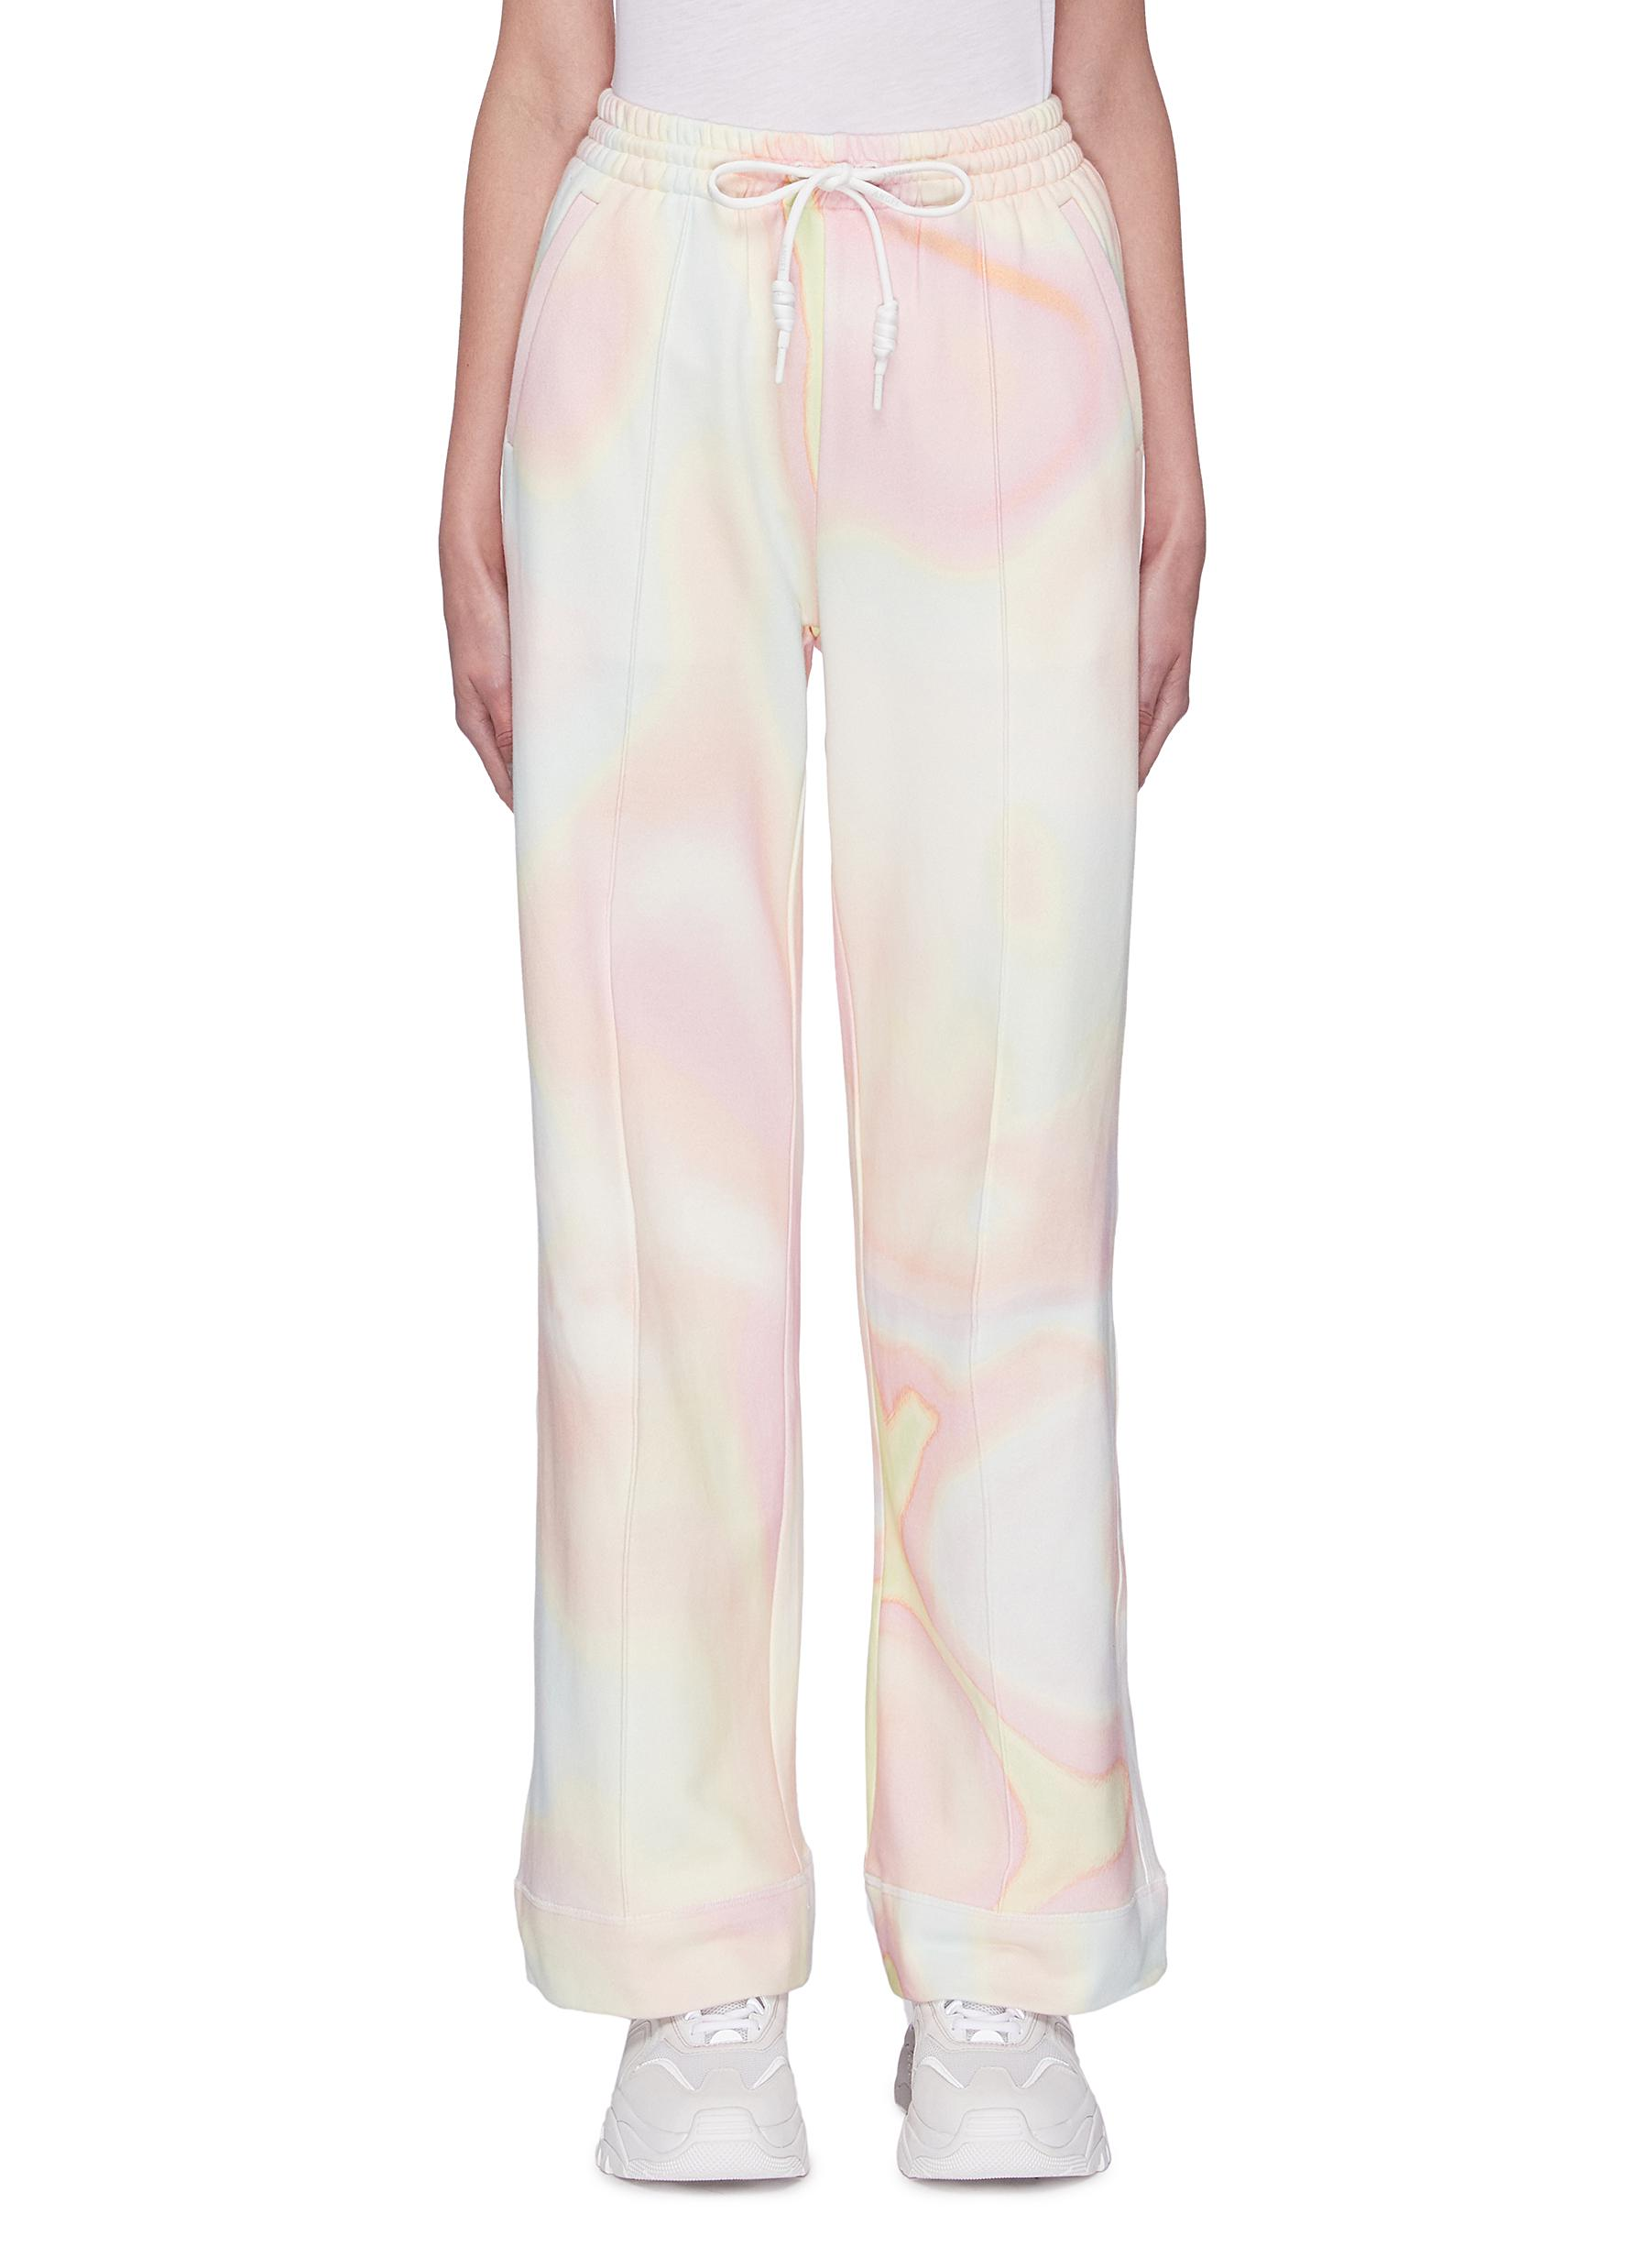 Buy Angel Chen Pants & Shorts Holographic Print Sweatpants